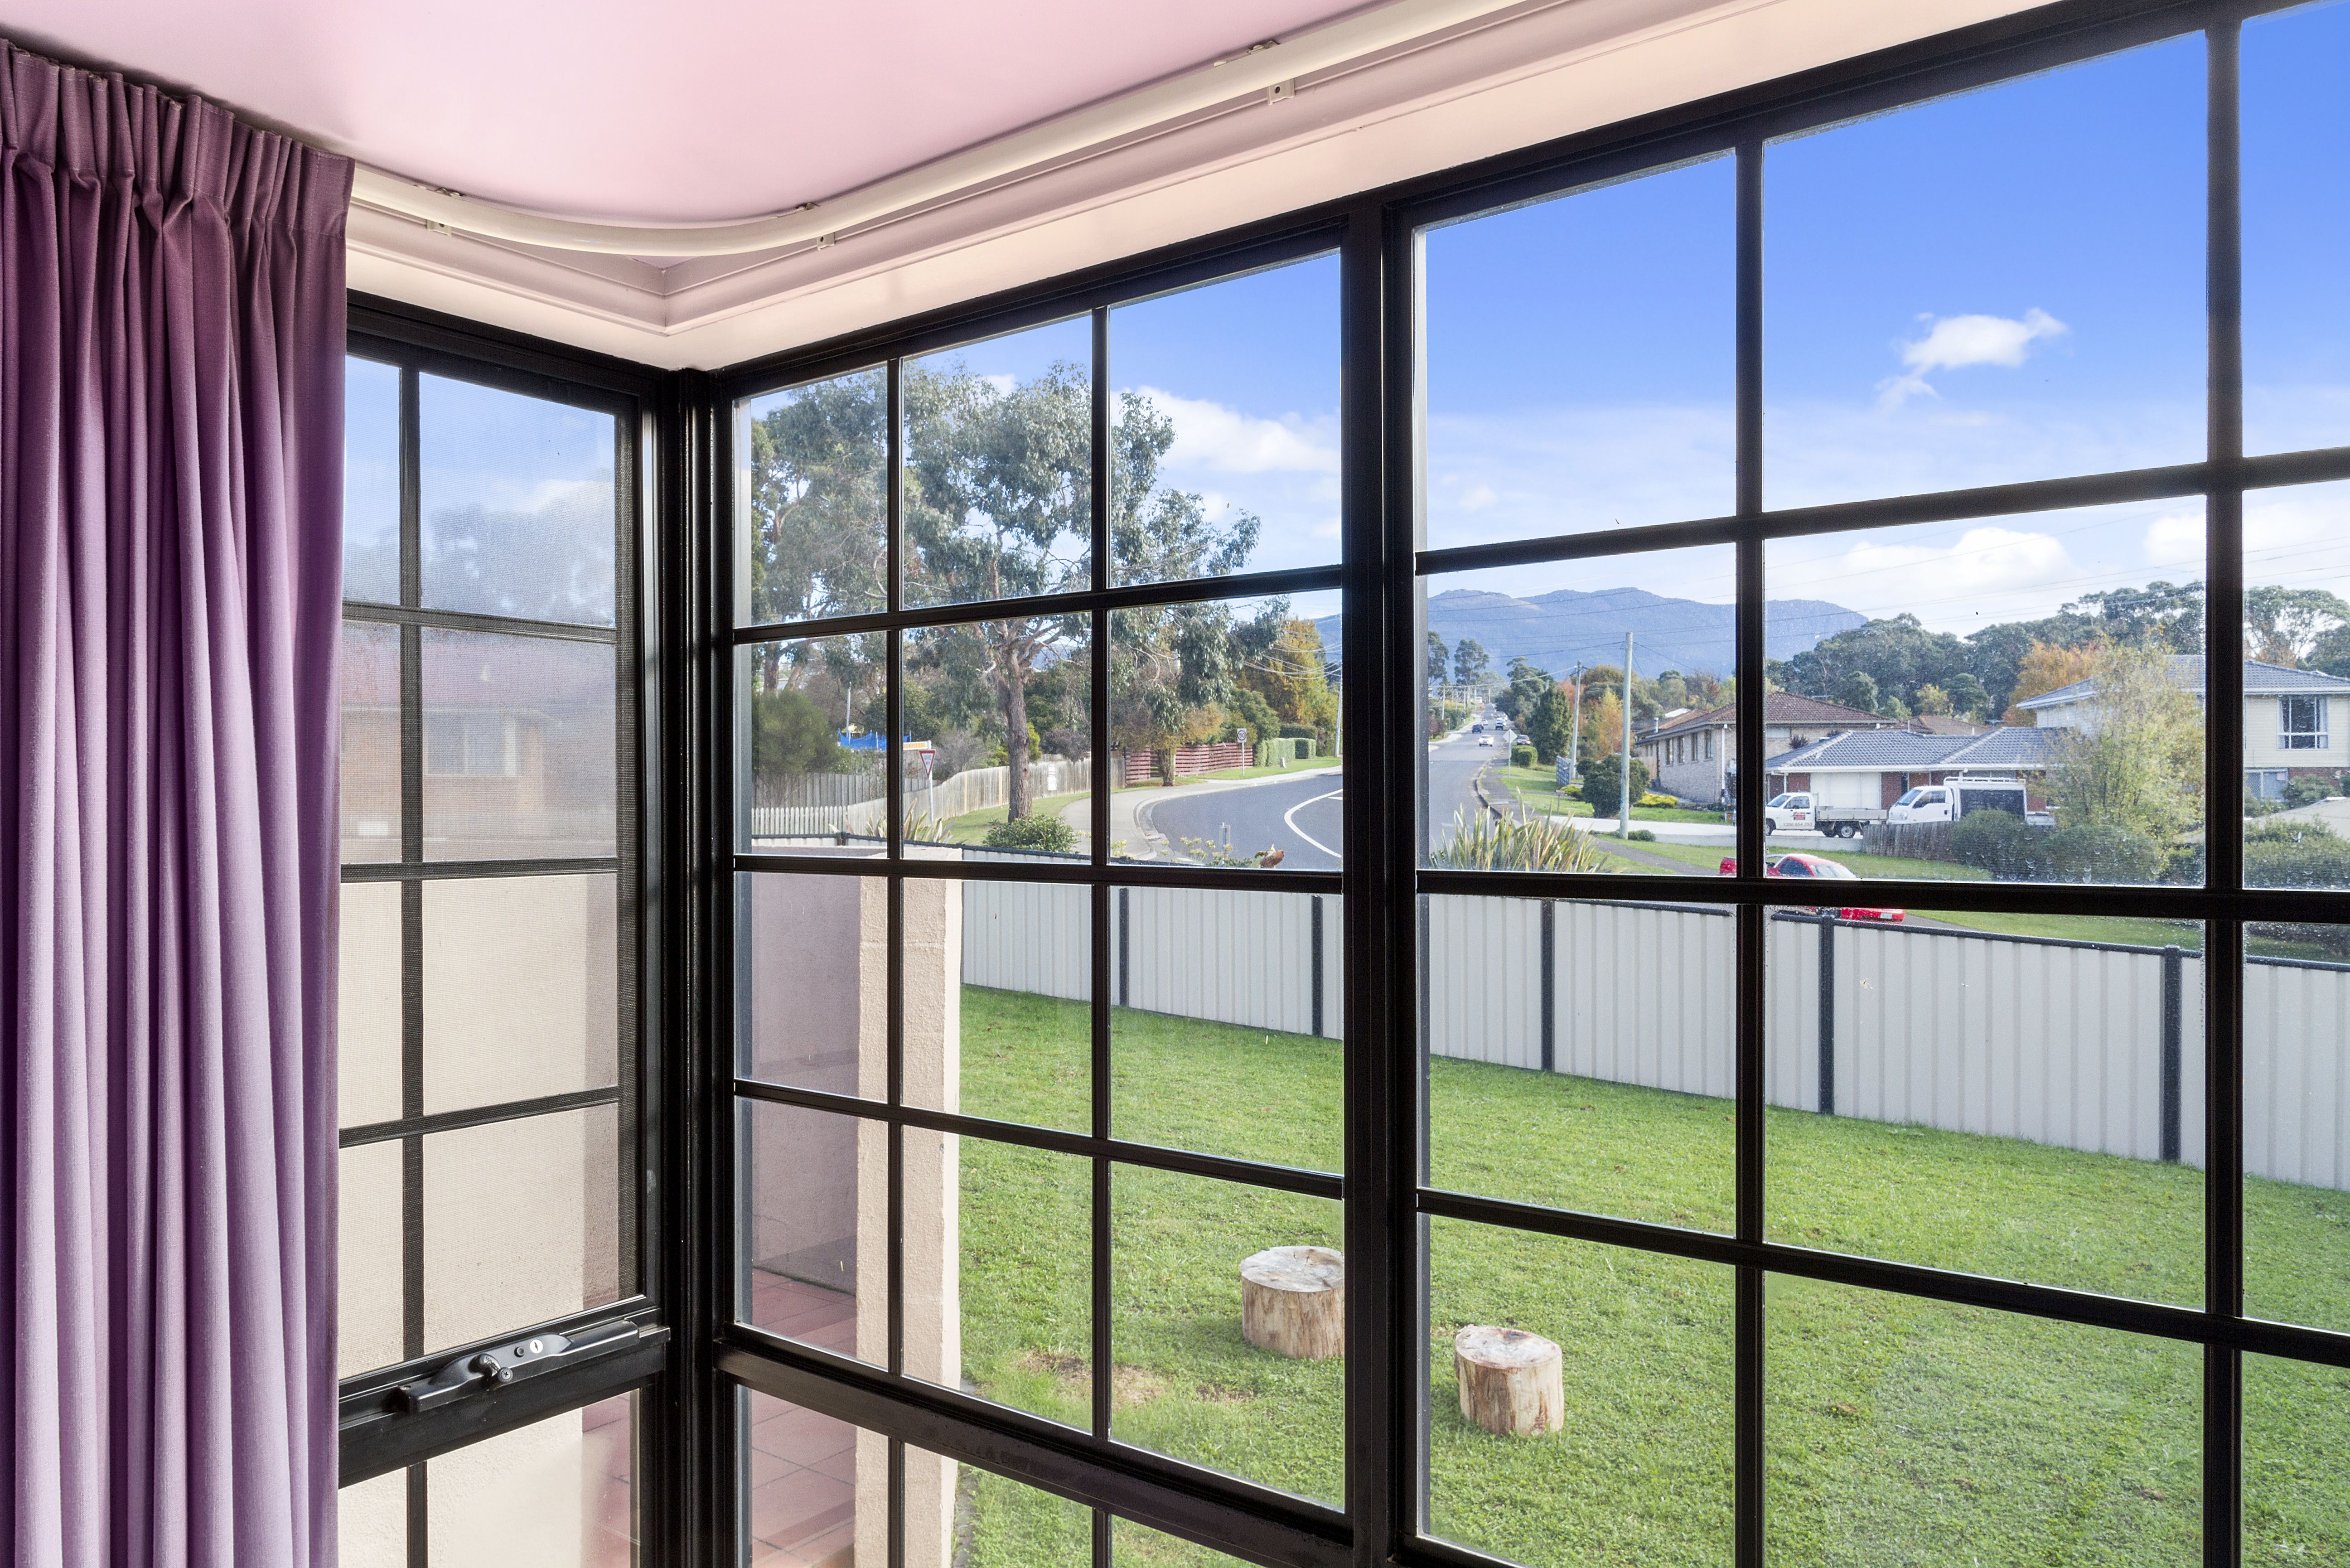 1 Greenhill Drive Kingston & Sold property: $570000 for 1 Greenhill Drive - Kingston  TAS 7050 pezcame.com